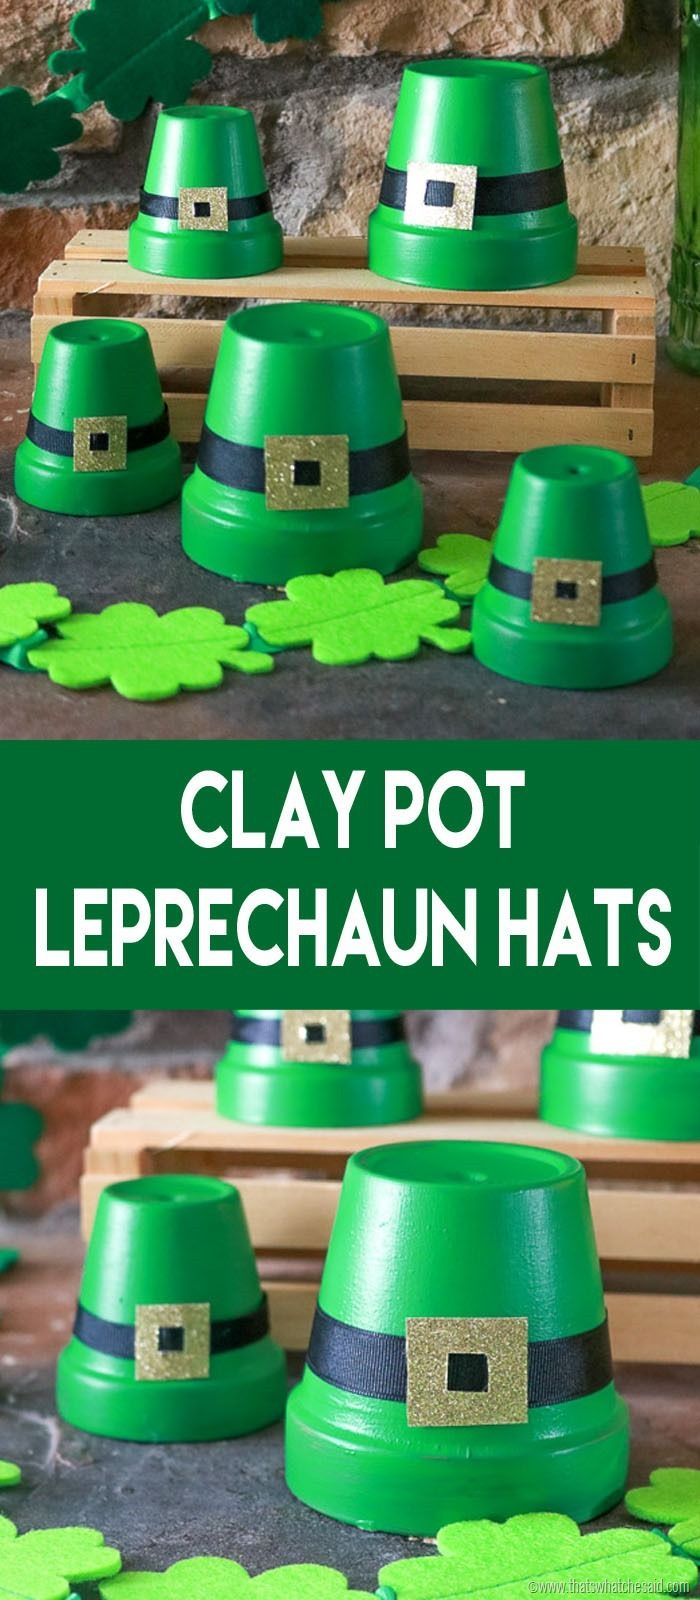 Leprechaun Hats made from clay pots